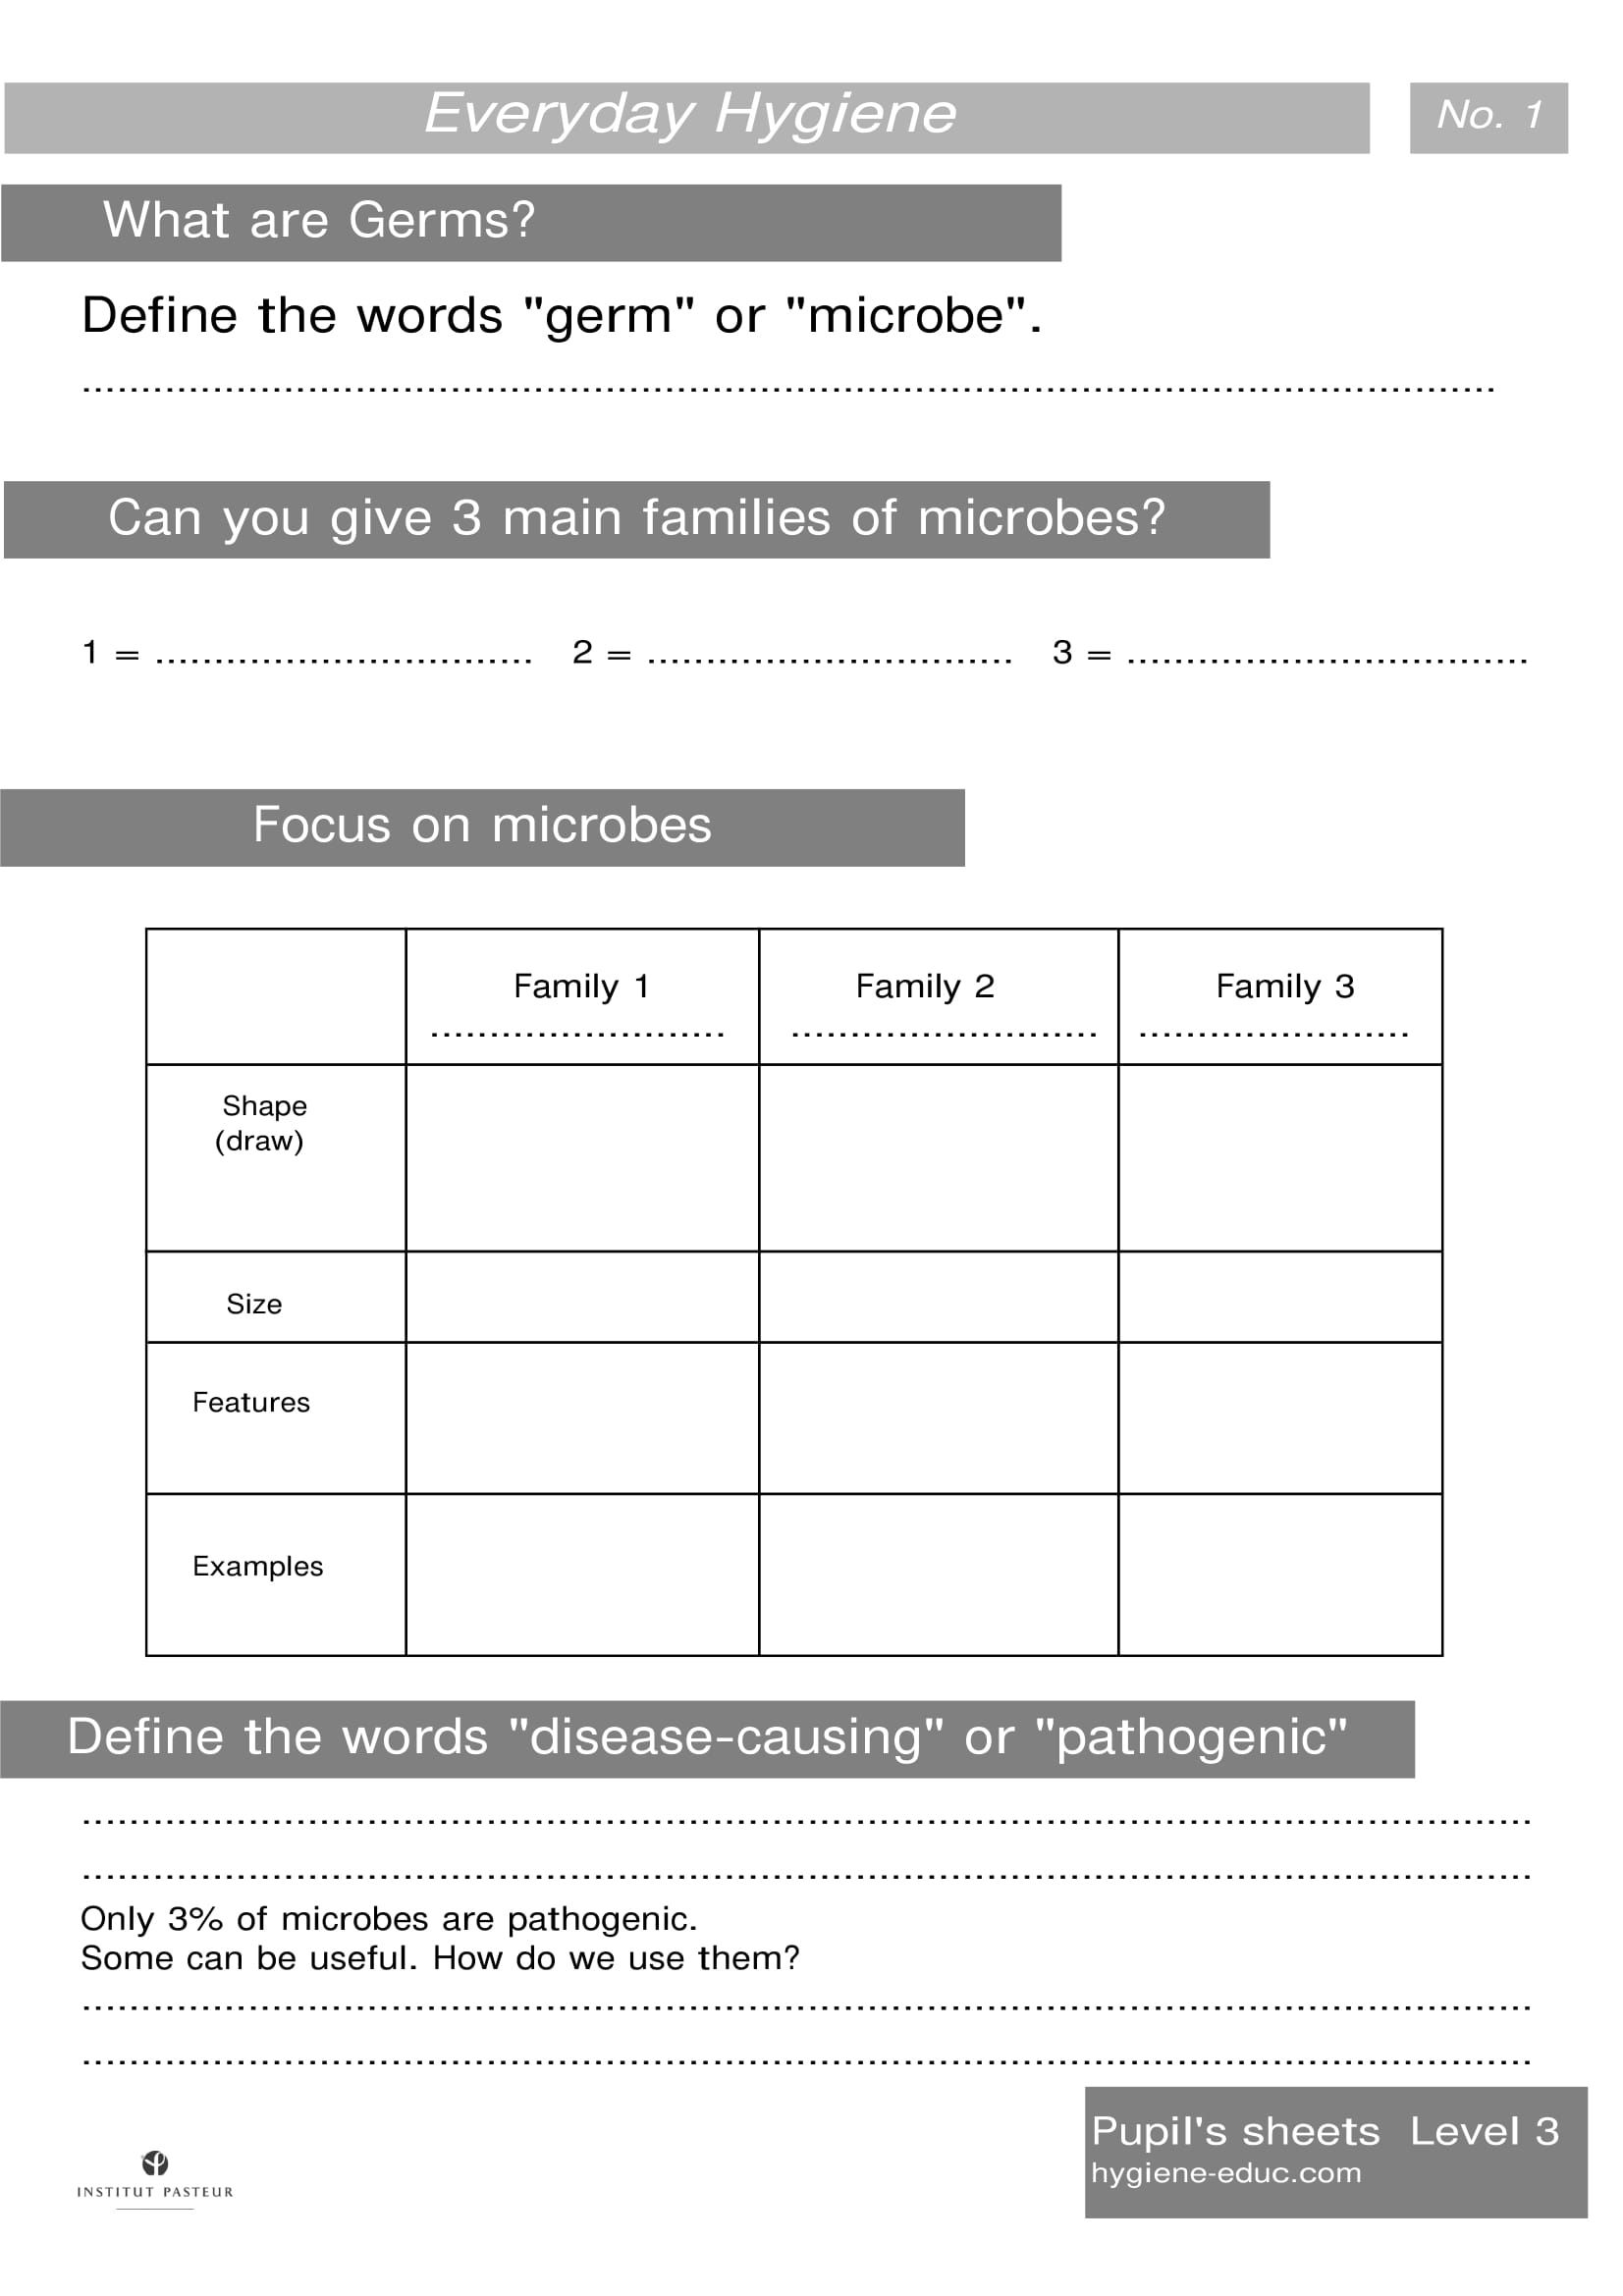 Everyday Hygiene Worksheets Level 3 Worksheets 1 What Are